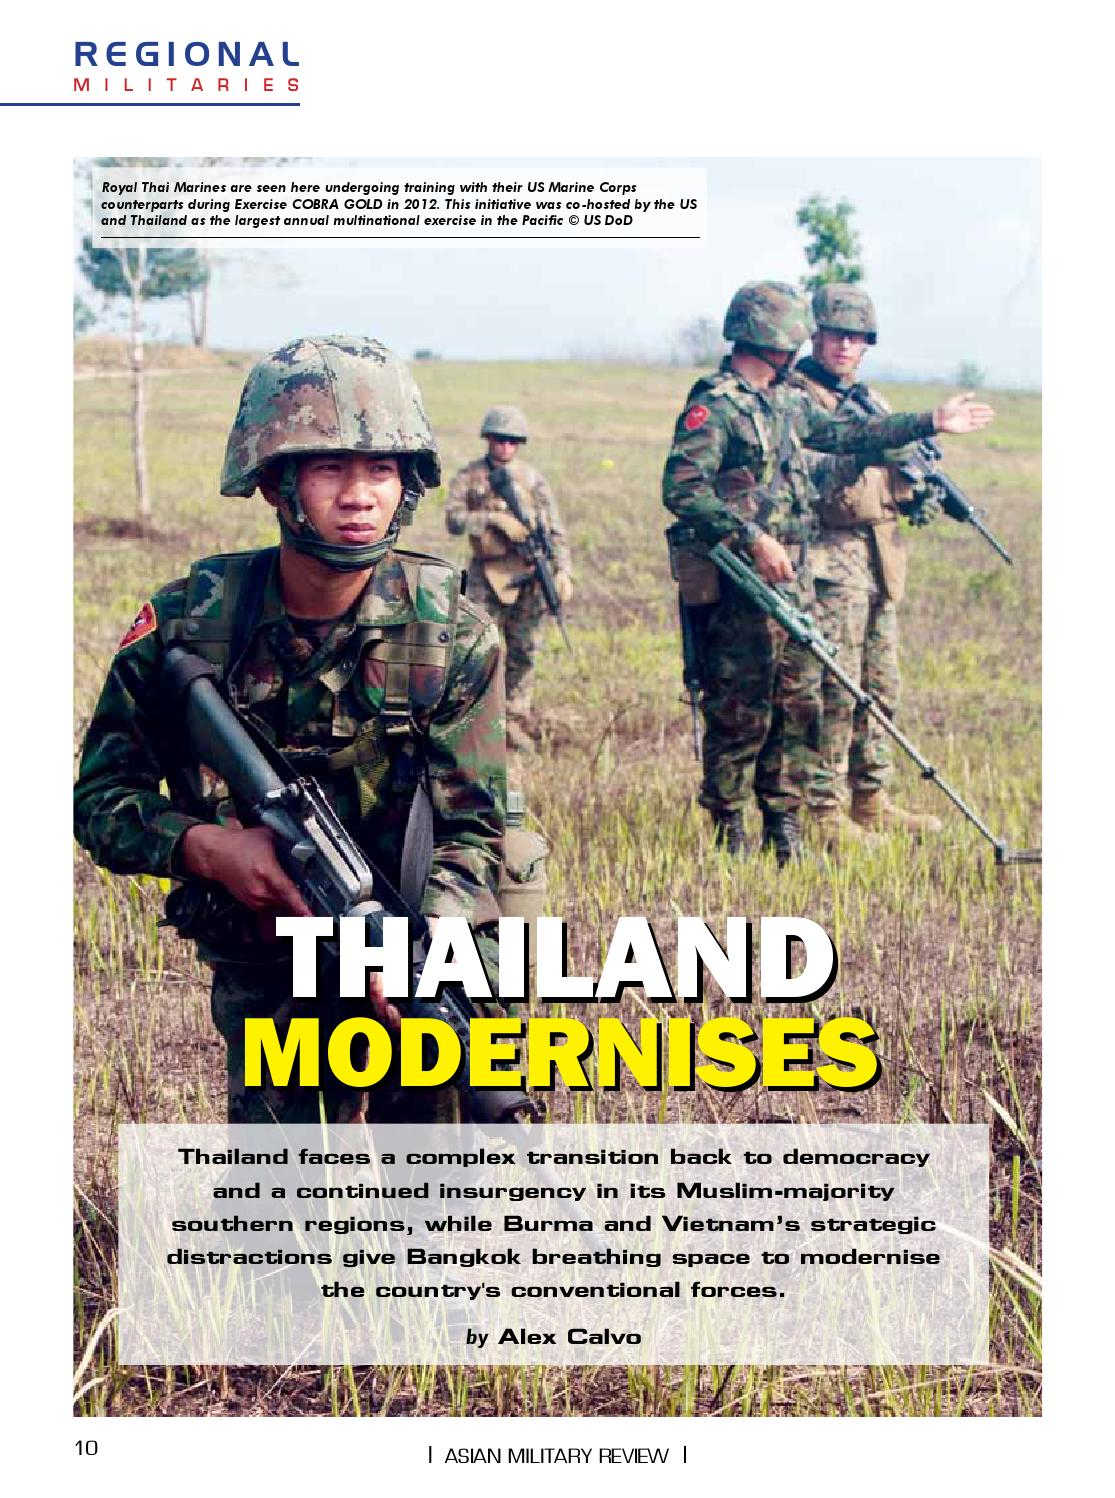 Asian Military Review - Nov 2015 by Armada International